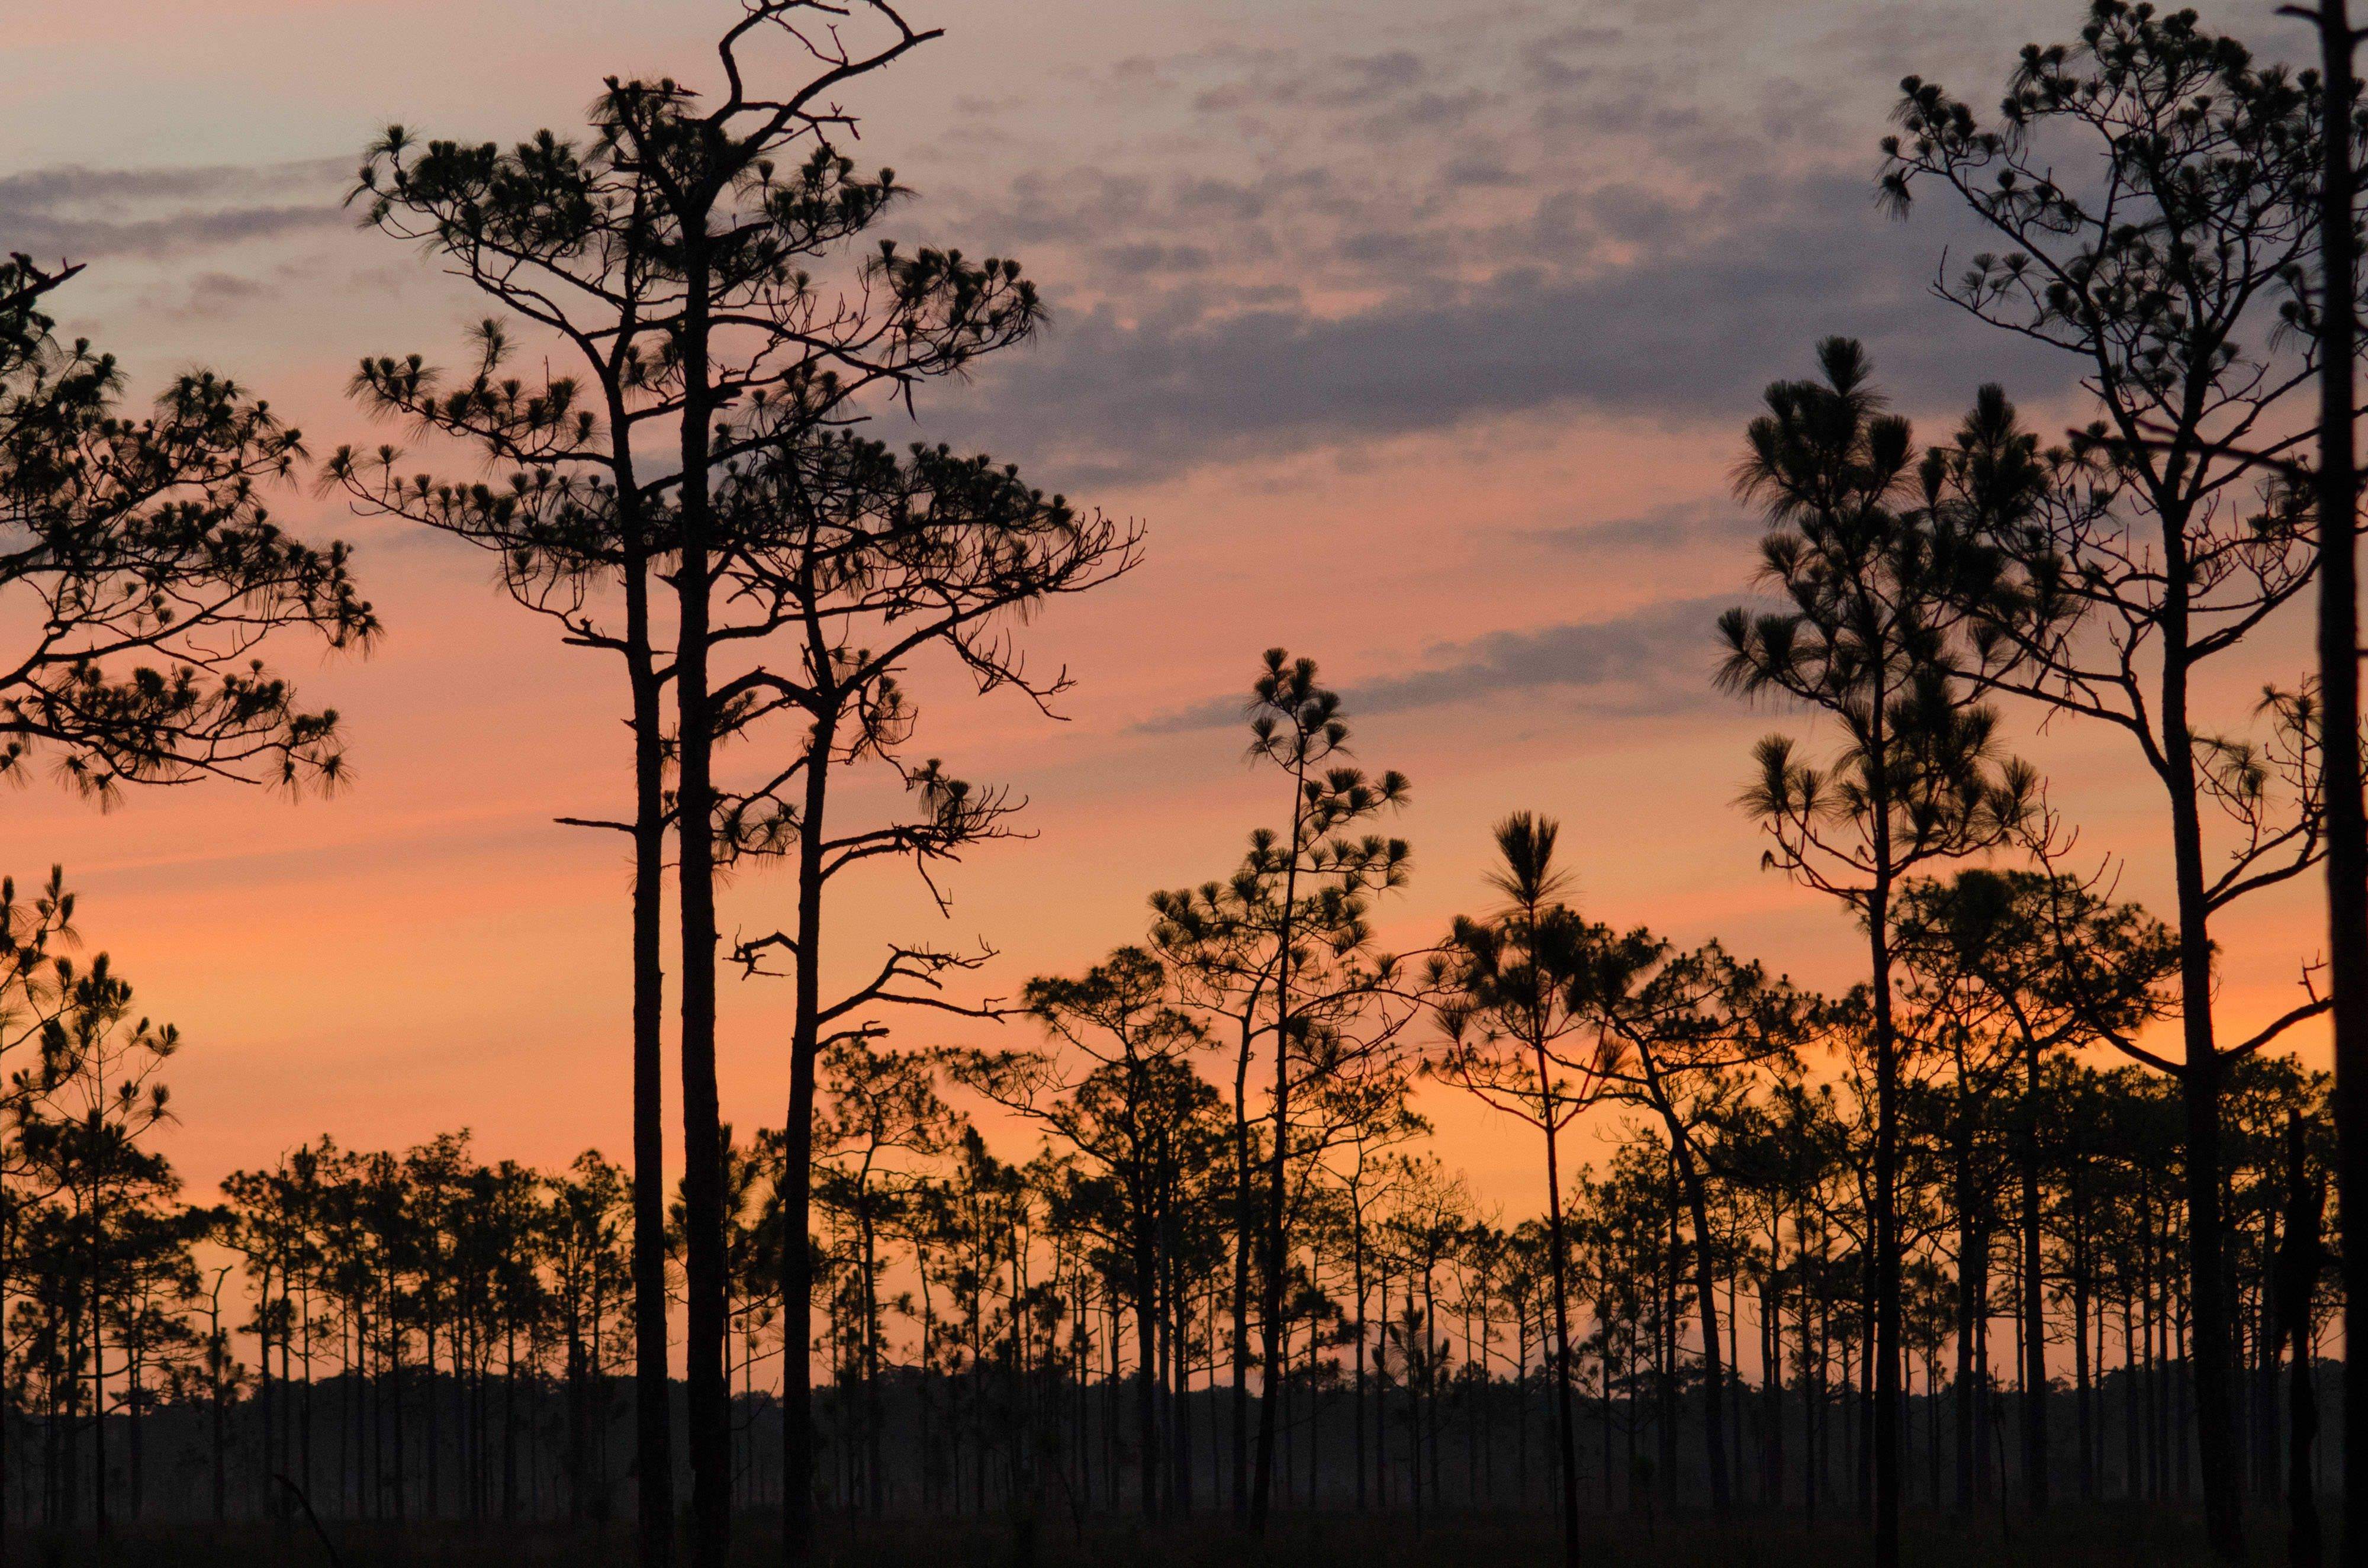 wide view of silhouetted longleaf pines against a colorful sunset